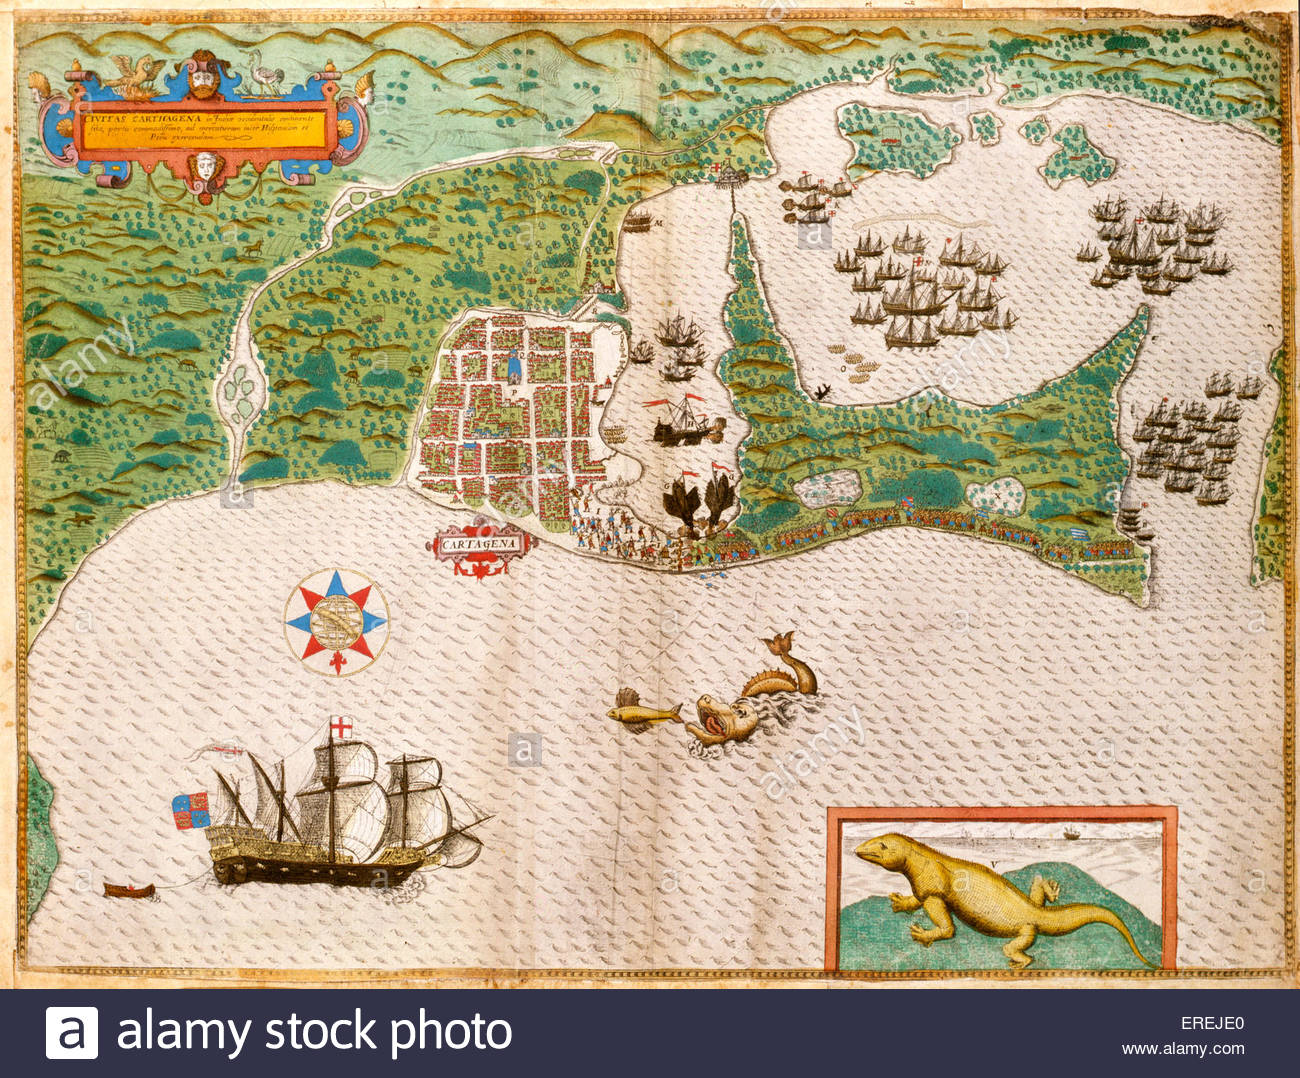 Attack On Cartagena One Of The Largest Naval Campaigns In - Cartagena de indias map